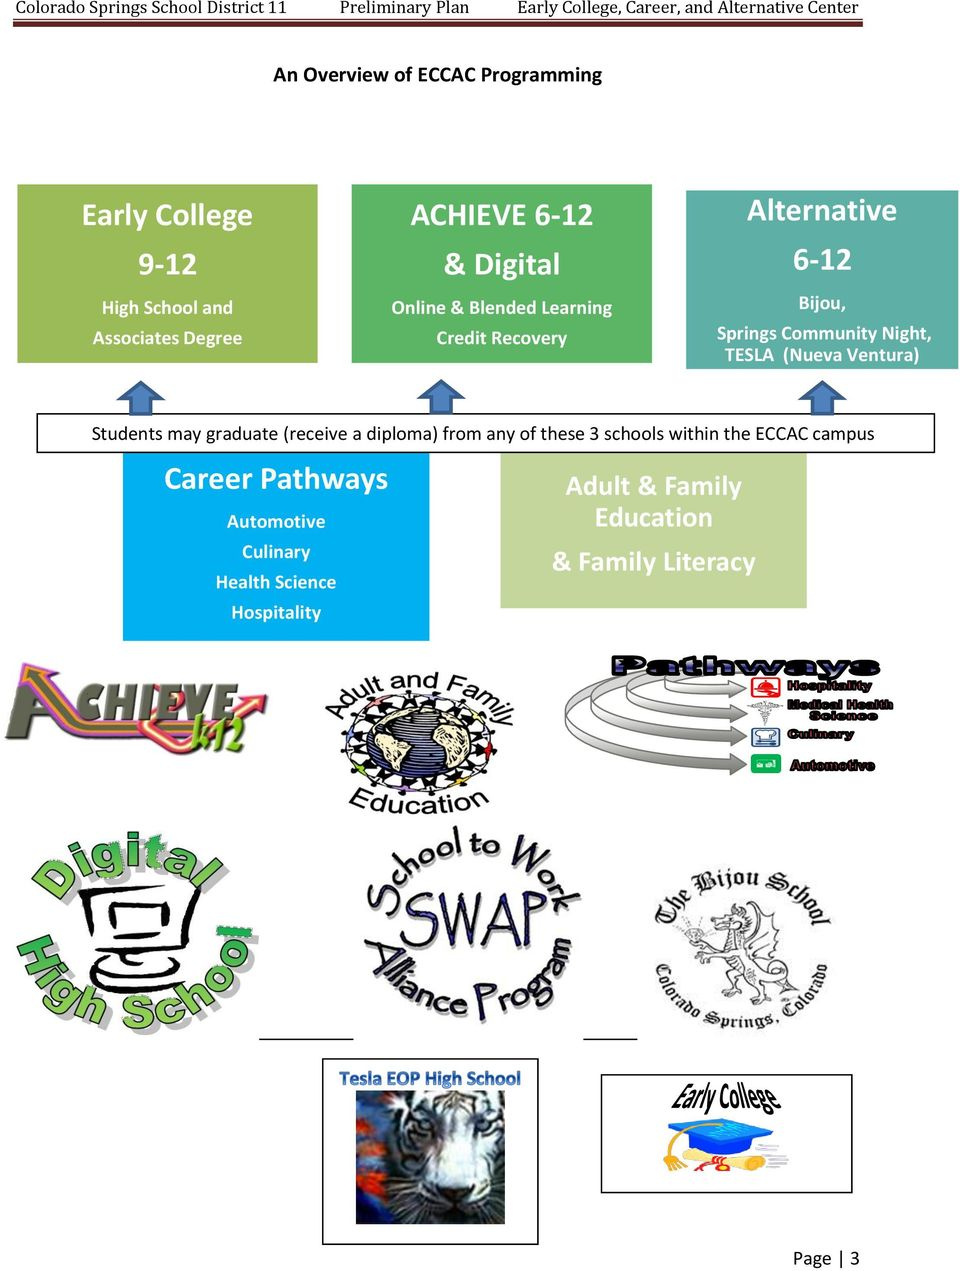 (Nueva Ventura) Students may graduate (receive a diploma) from any of these 3 schools within the ECCAC